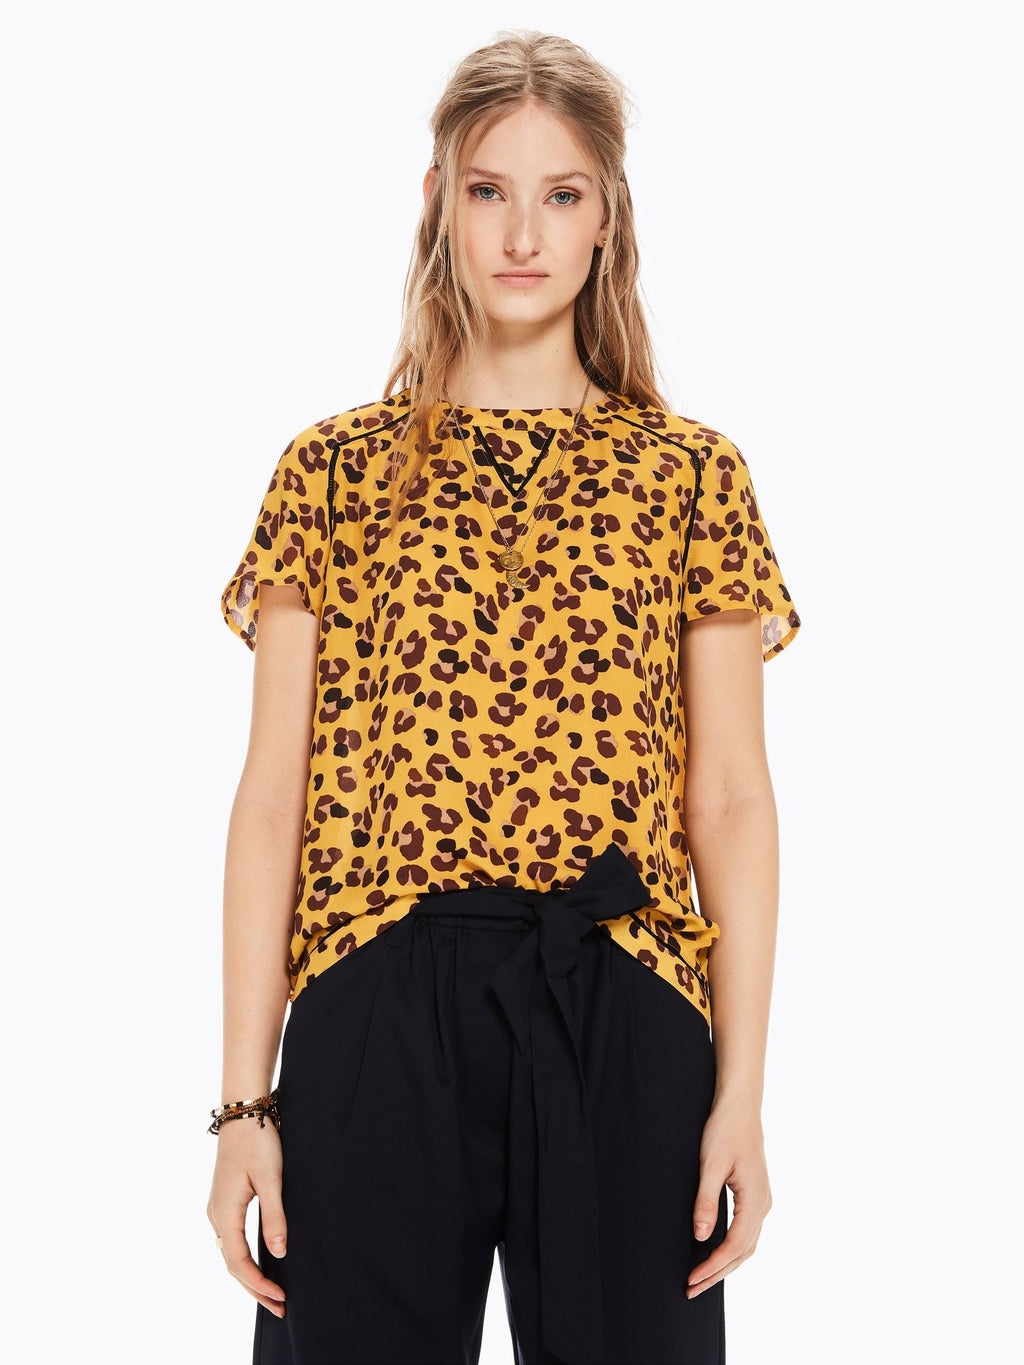 Buy Printed Ladder Detail Top from SCOTCH AND SODA at PAYA boutique